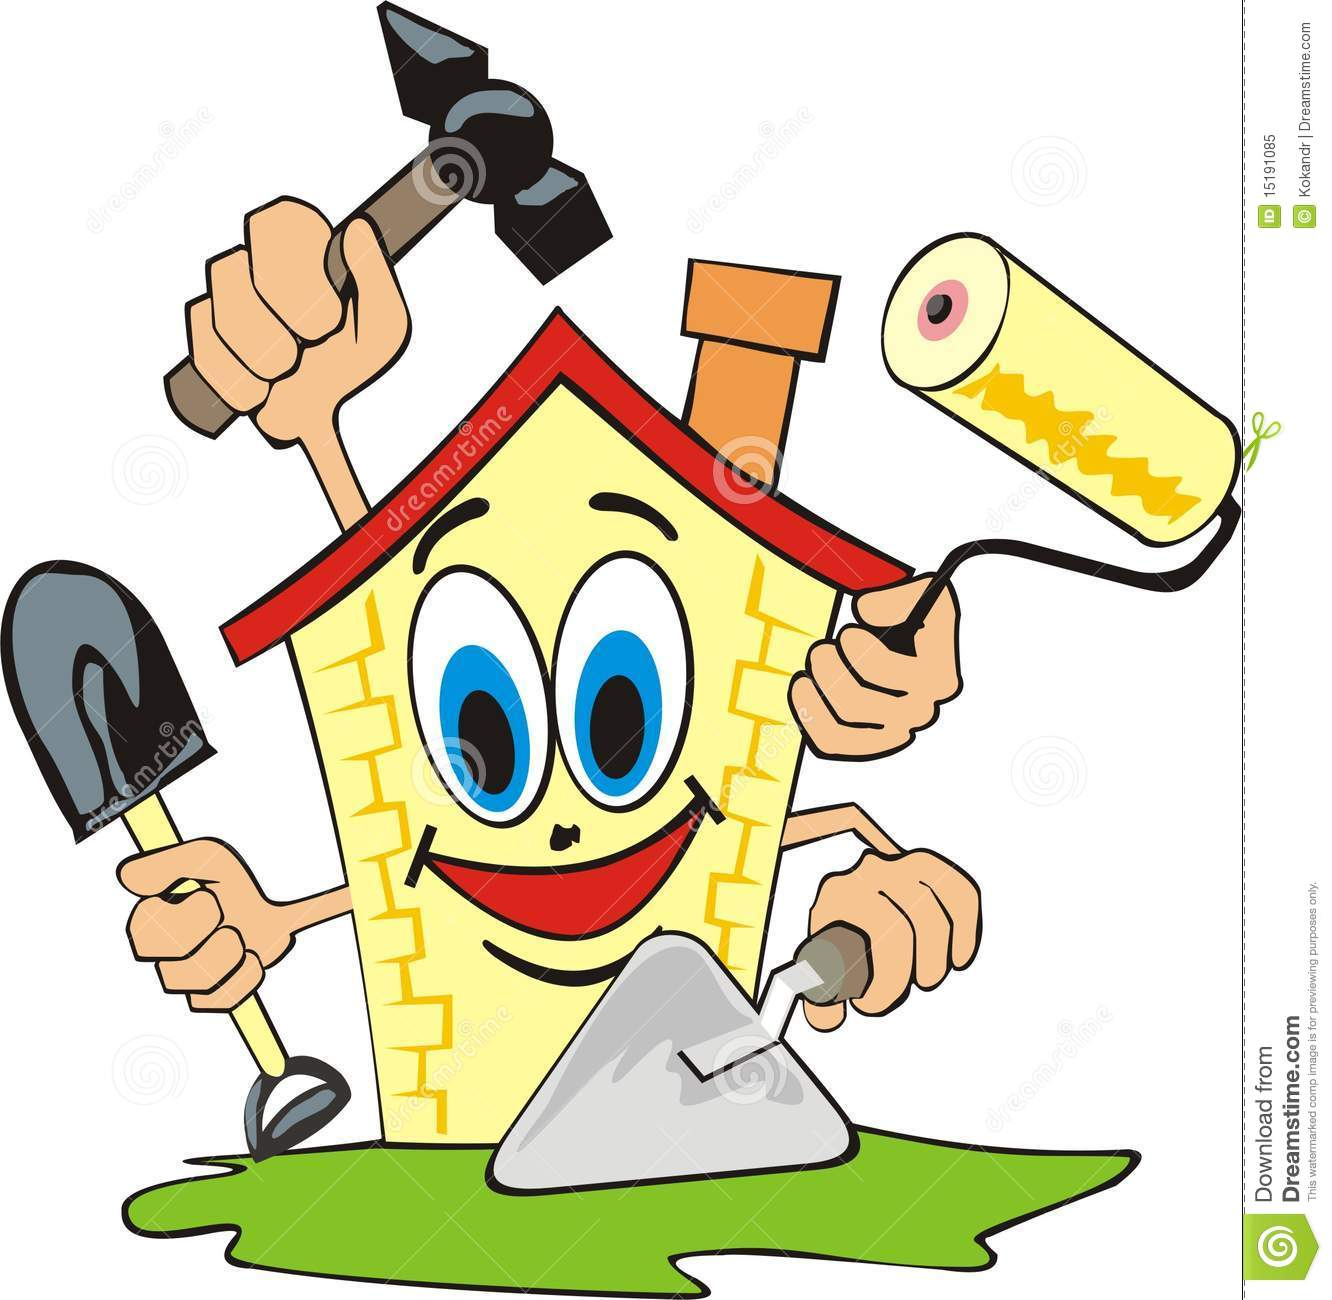 Home Repair Royalty Free Stock Photo - Image: 15191085